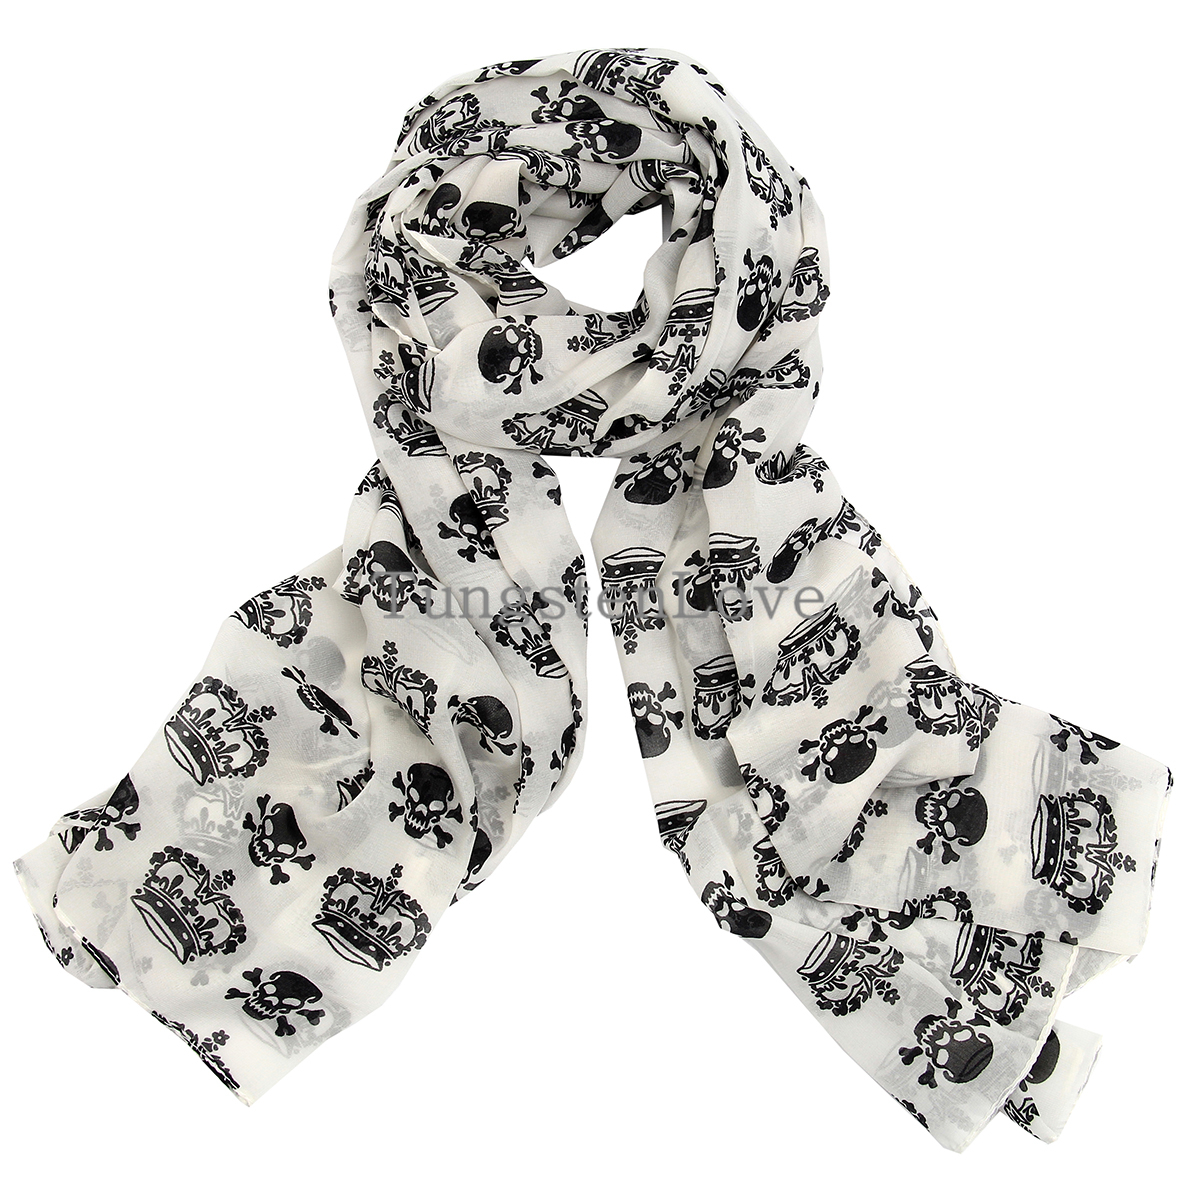 2015 Ladies Scarves Chiffon Skull Print Scarf Wrap Shawl Halloween Party Christmas Gifts Black / White Color Selectable(China (Mainland))